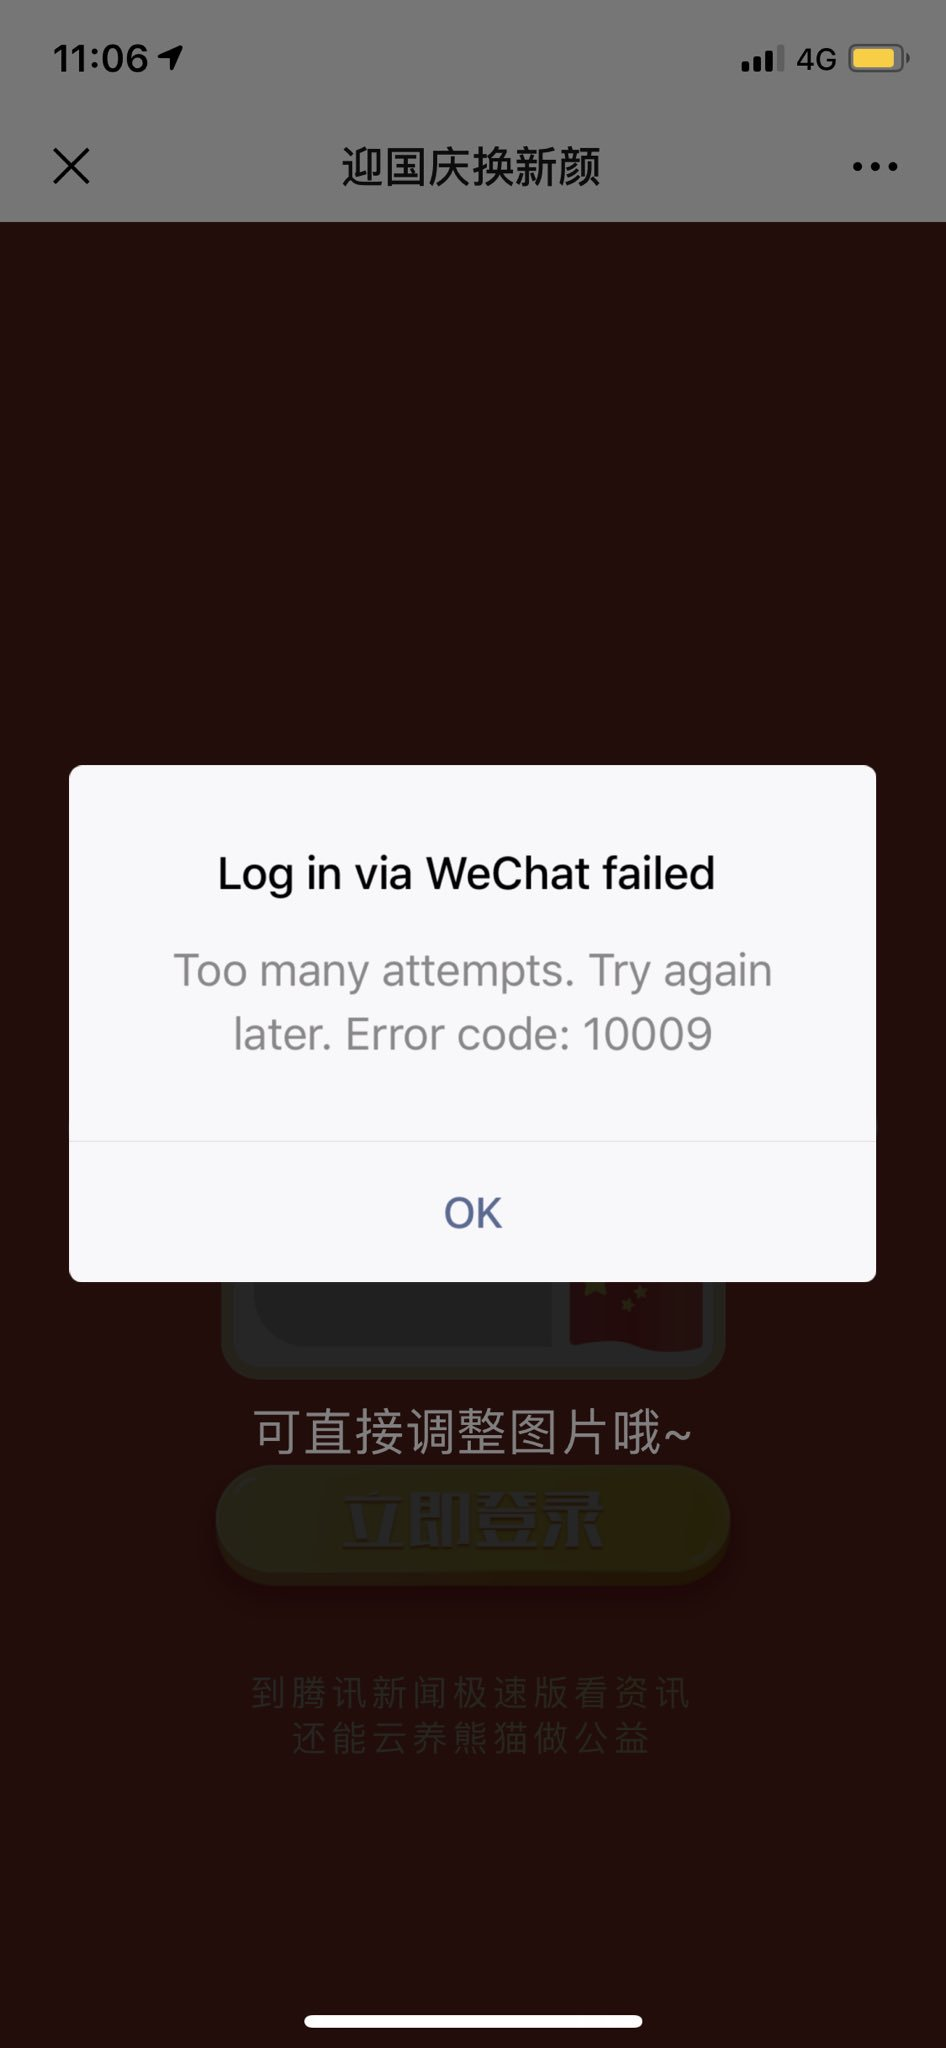 Wechat too many attempts